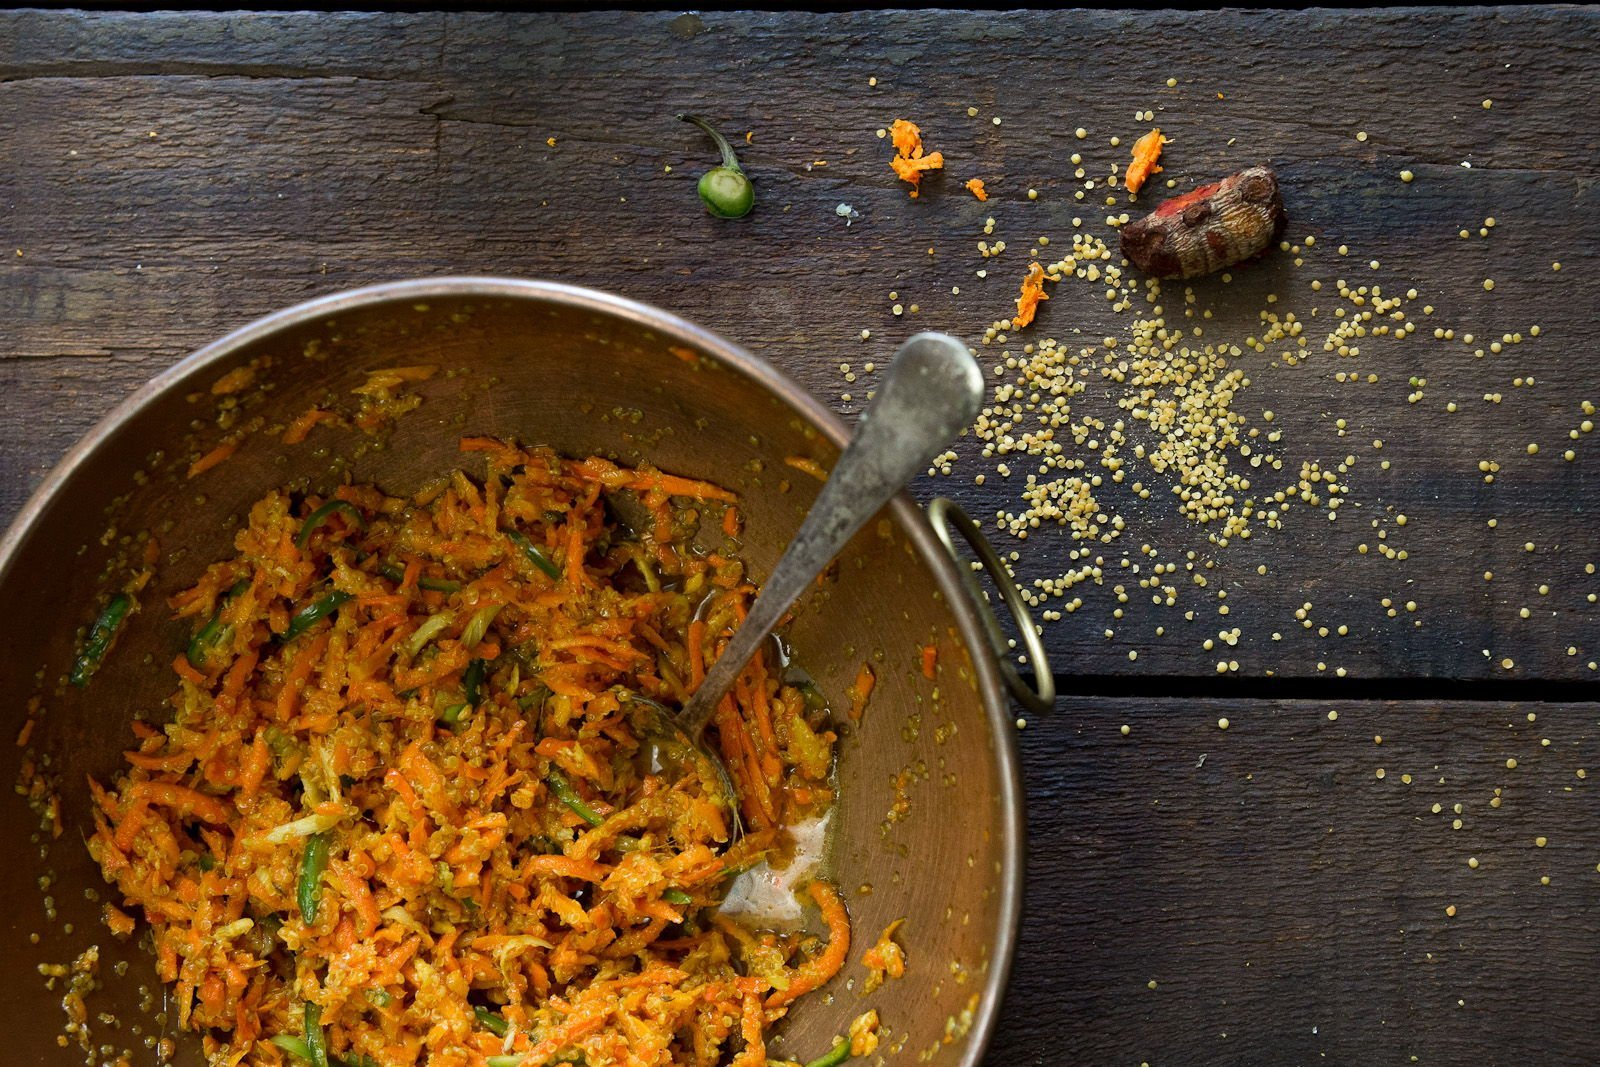 All about turmeric and a recipe for turmeric pickle indiaphile turmeric pickle recipe by indiaphilefo forumfinder Image collections